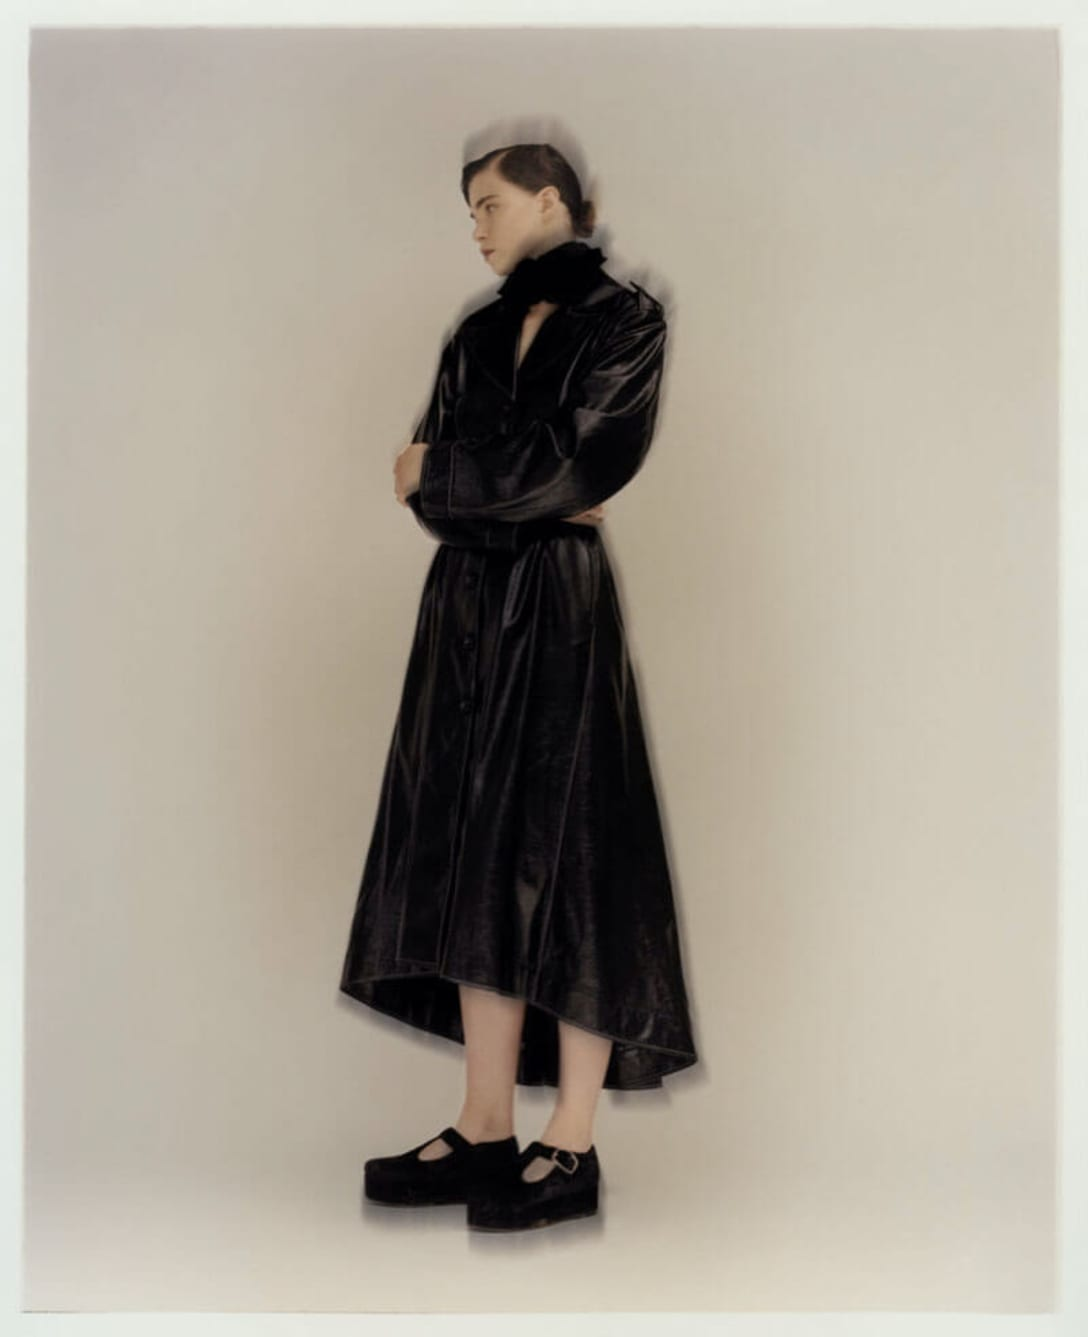 dress and shoes by ERDEM